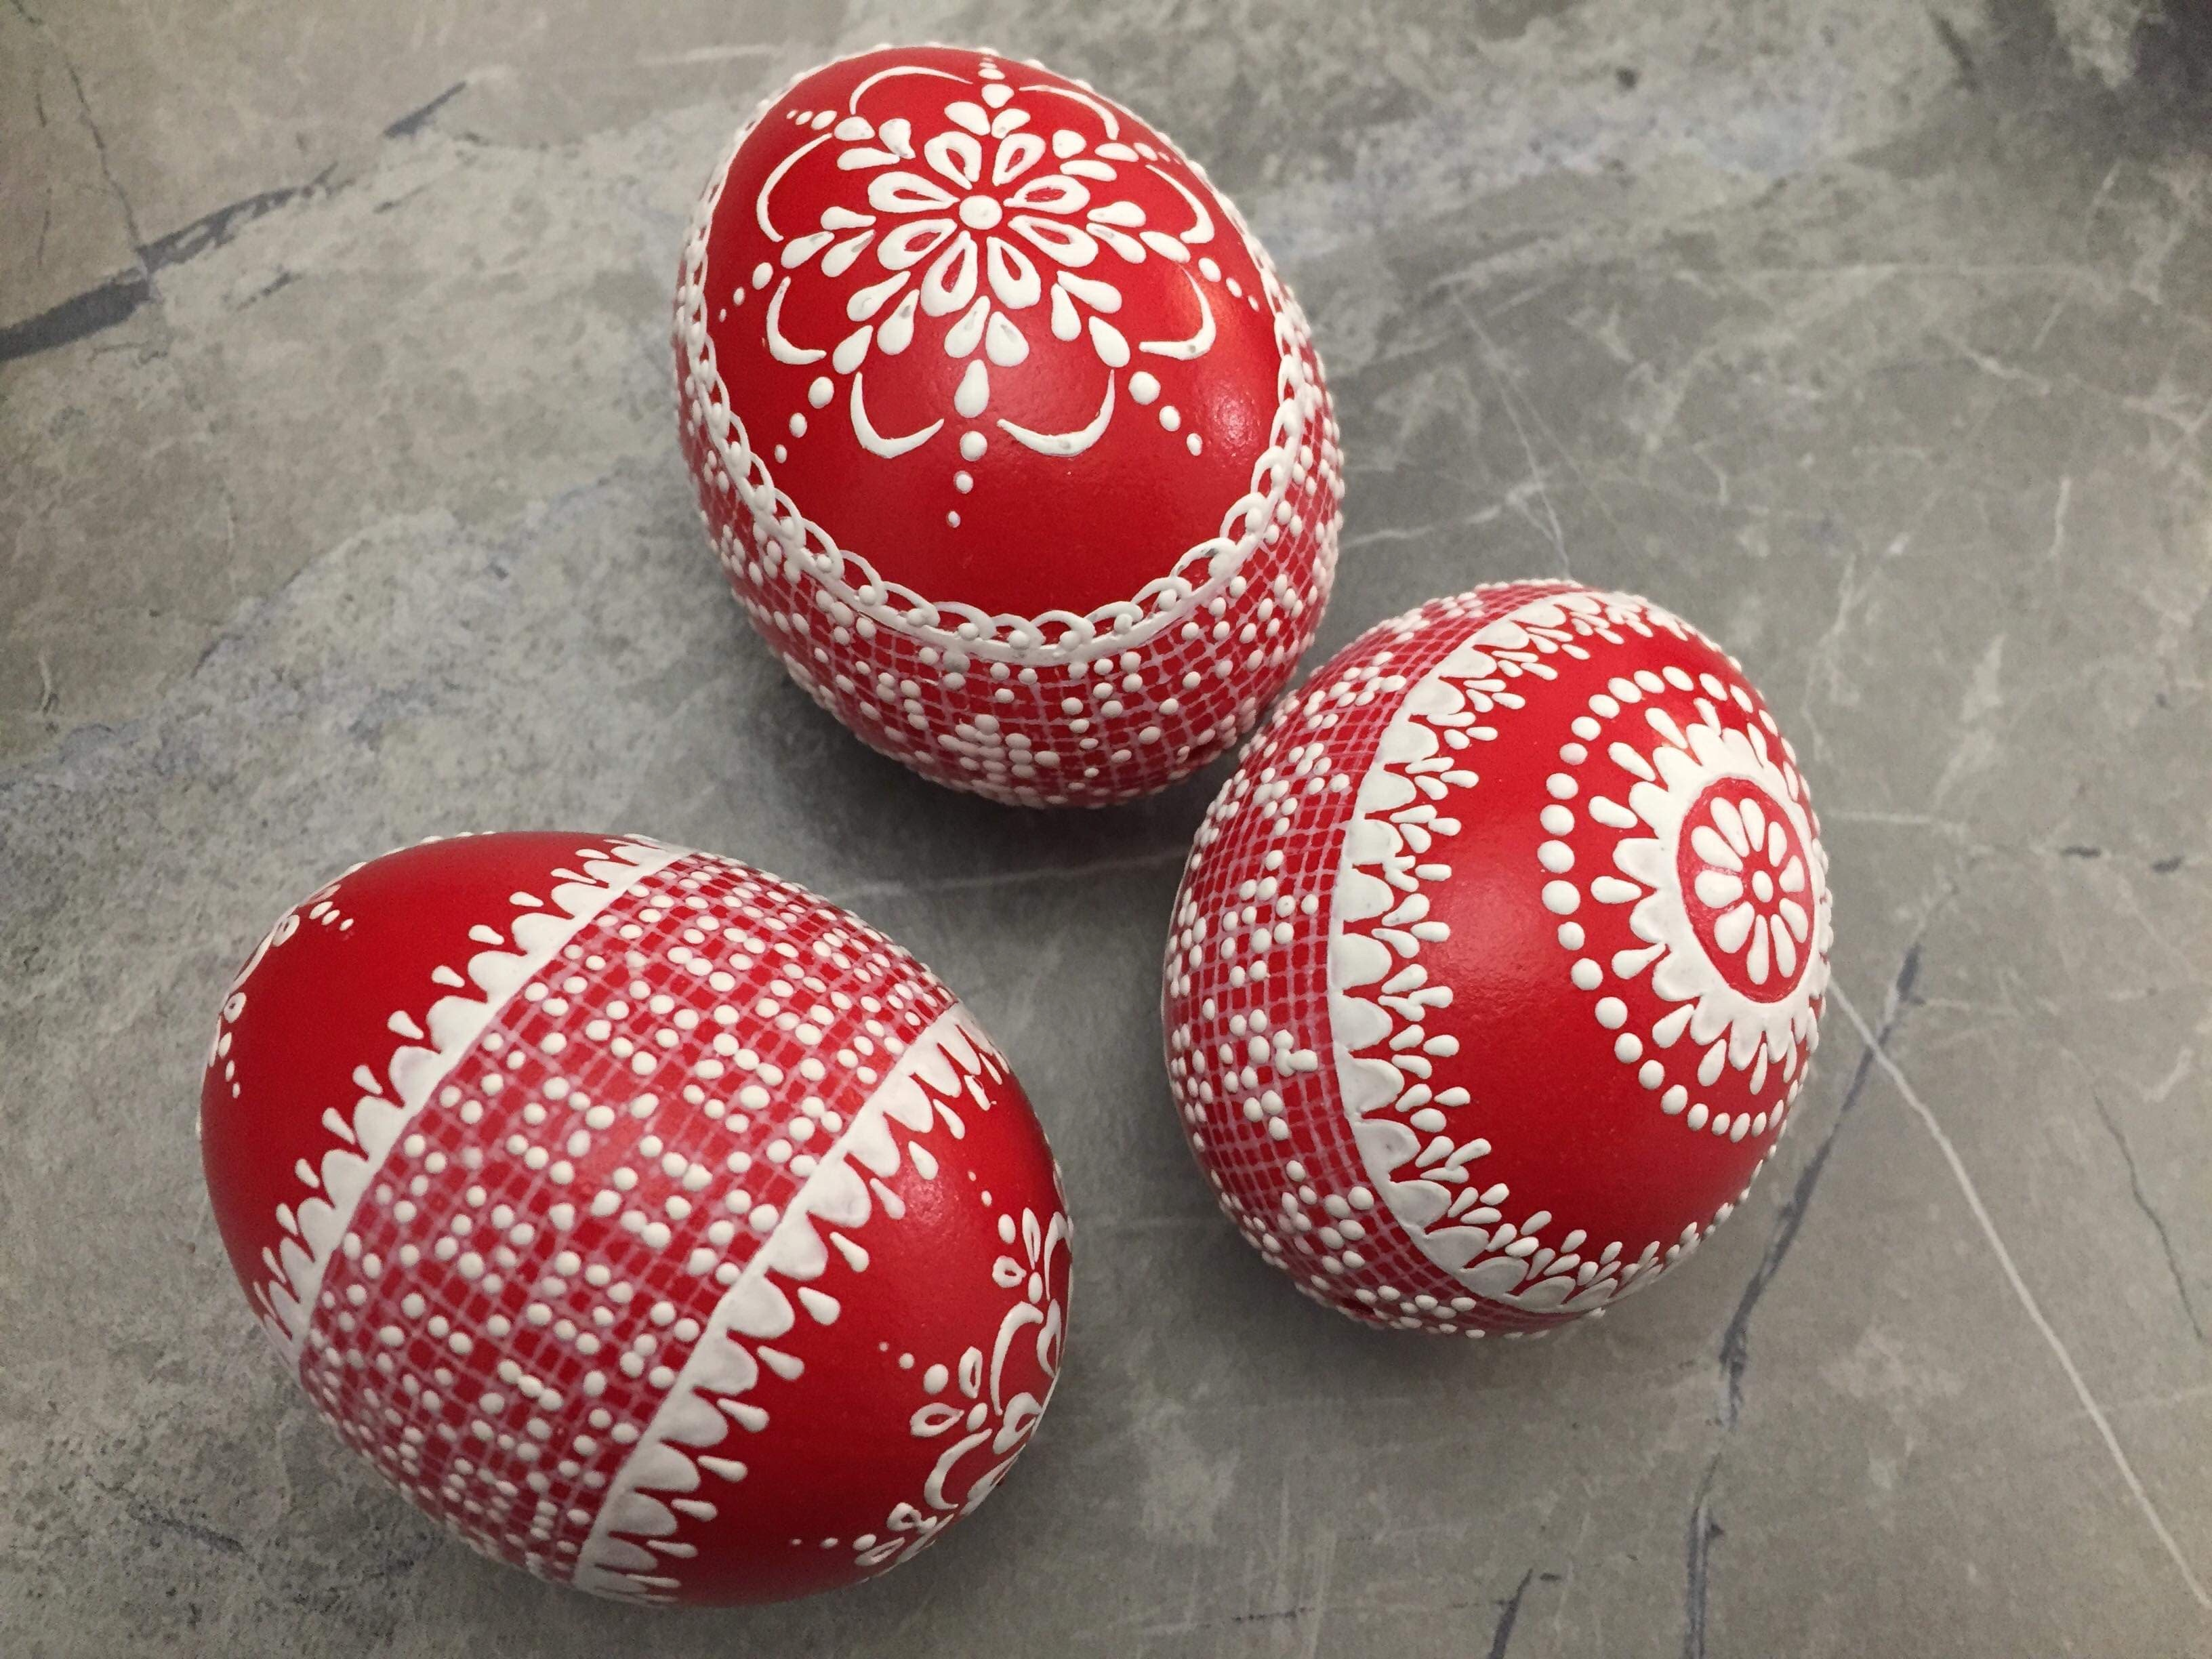 Try traditional Eastern Slovak recipes this Easter